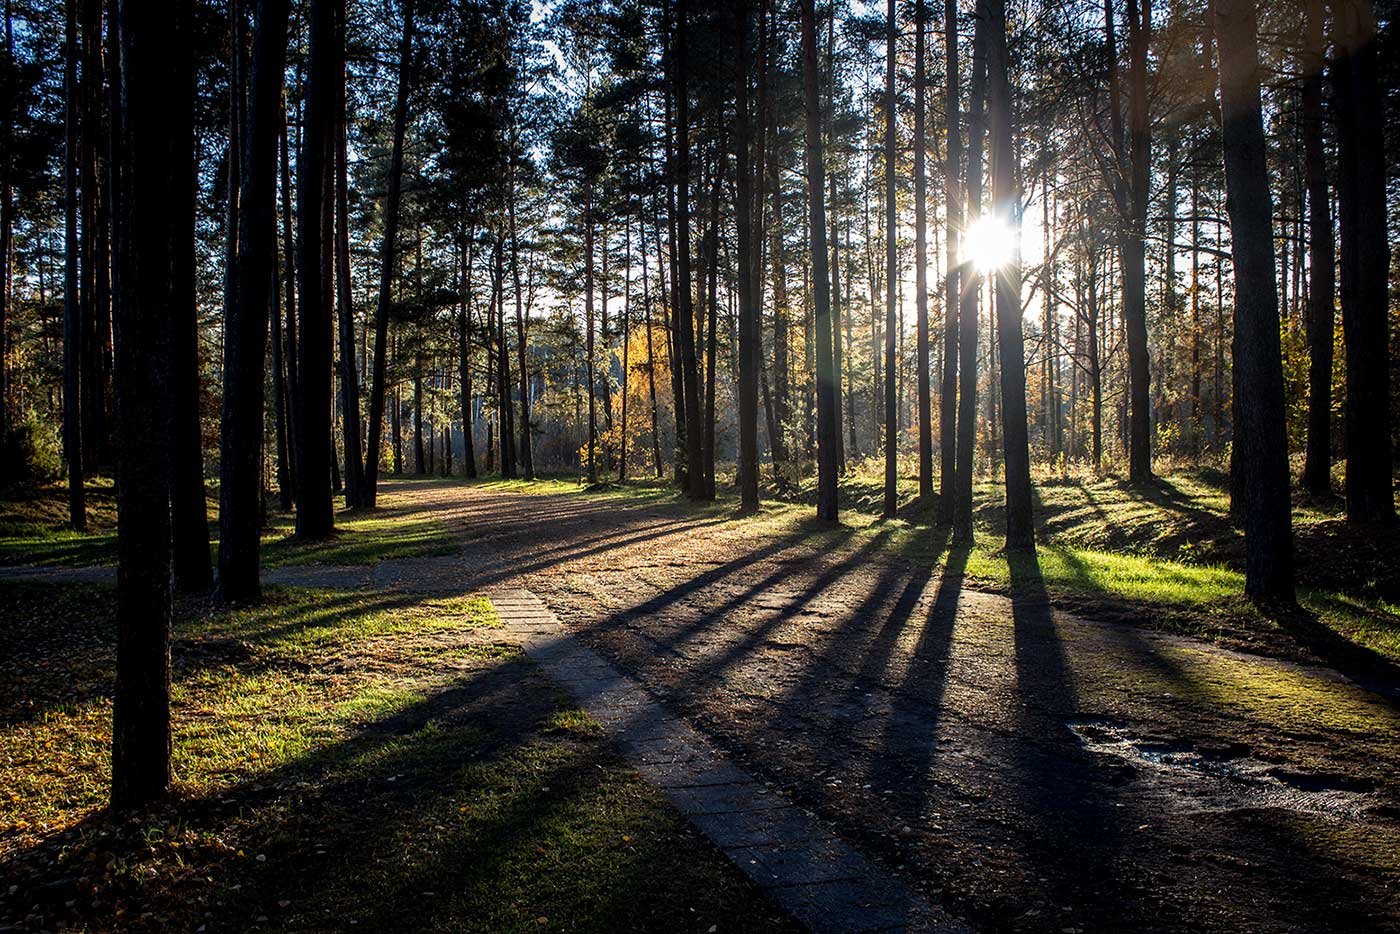 The forested approach to the Salaspils Memorial. Salaspils Memorial, Latvia.